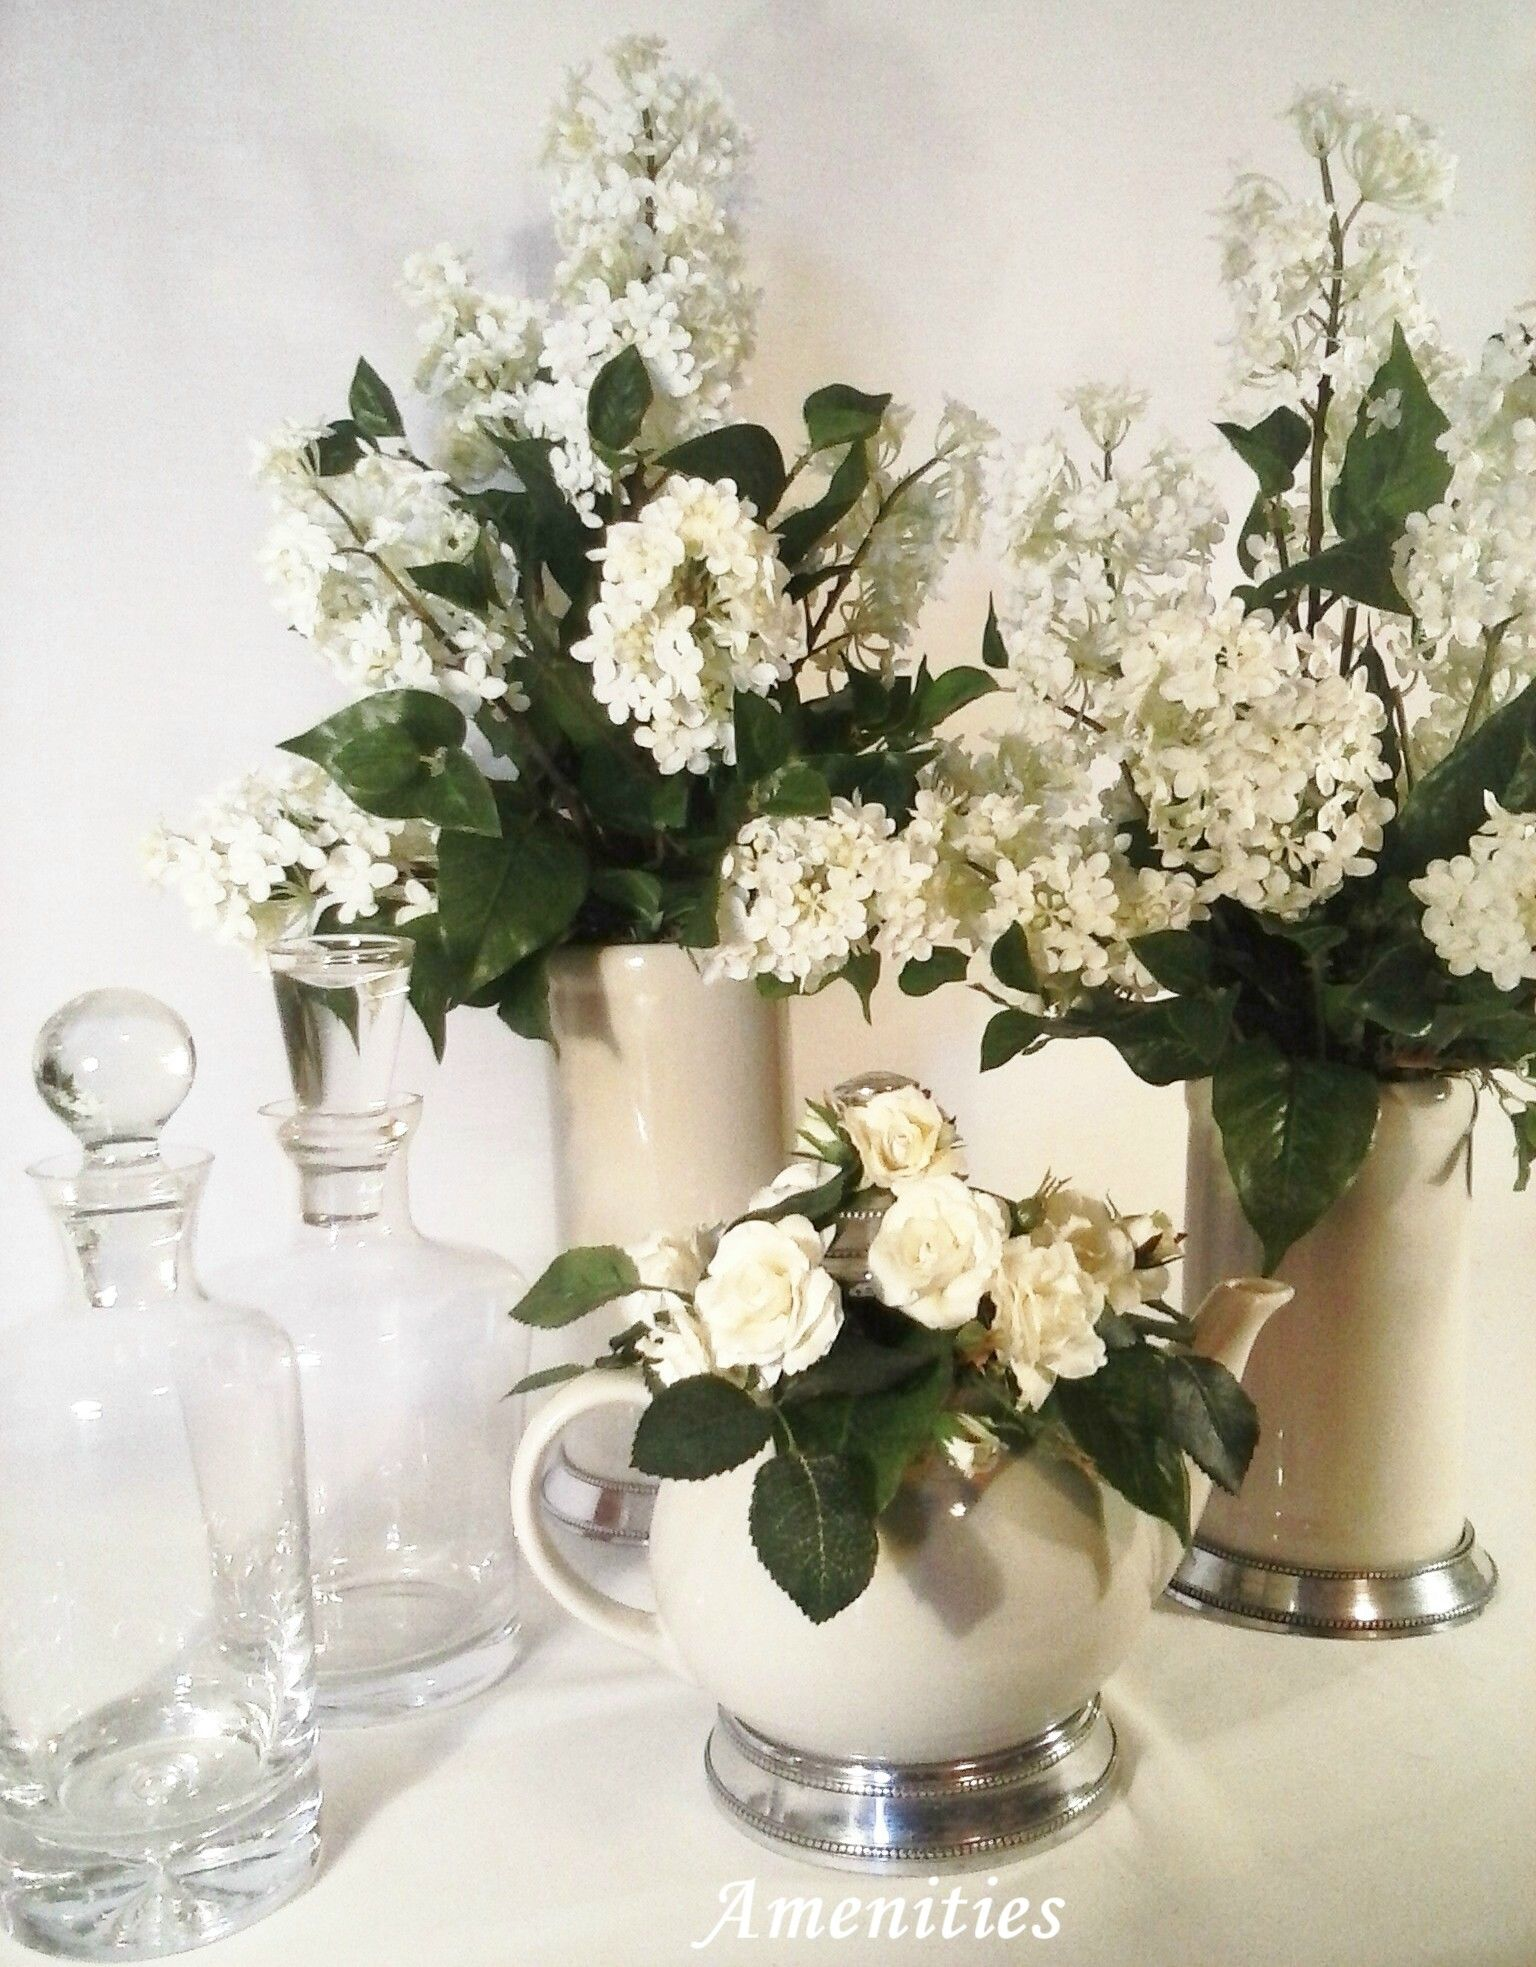 This Tabletop Display Shows How White Silk Flower Arrangements Can